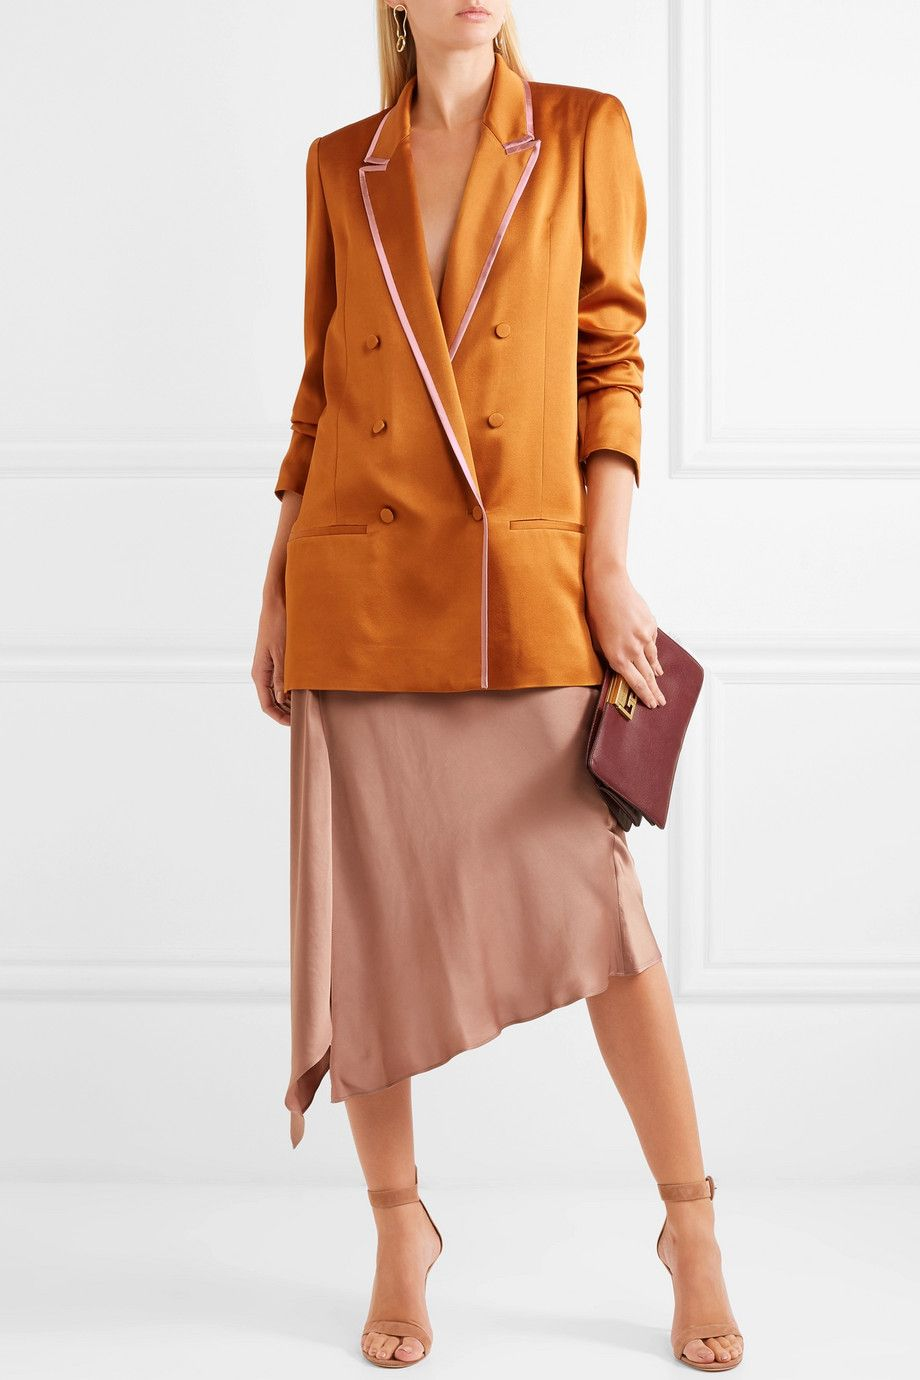 46f10dc5a1b41 Haider Ackermann - Double-breasted two-tone satin blazer in 2019 ...